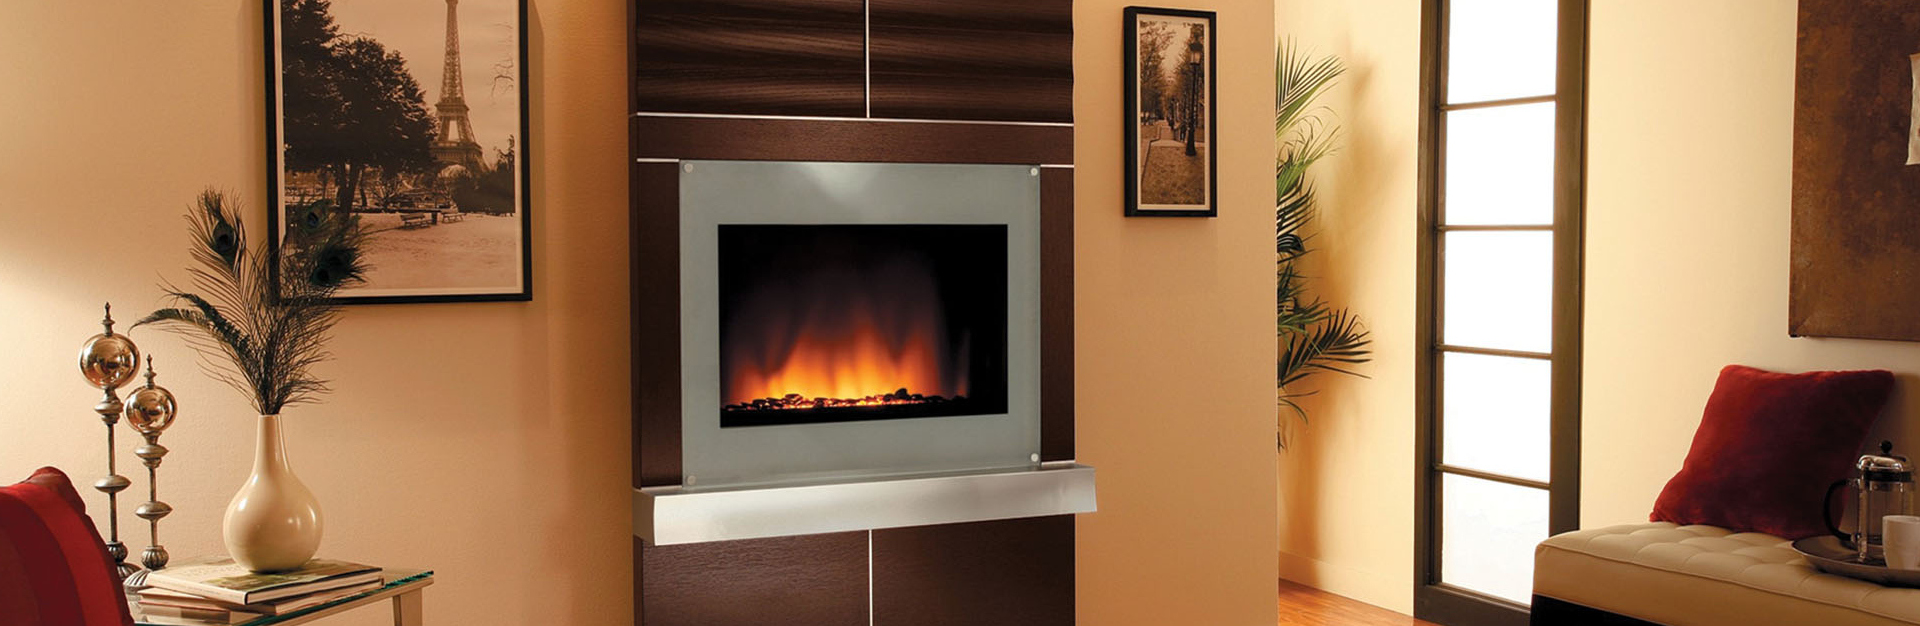 fireplaces dealers for gas ontario sales songdc fireplace sale hamilton me near insert